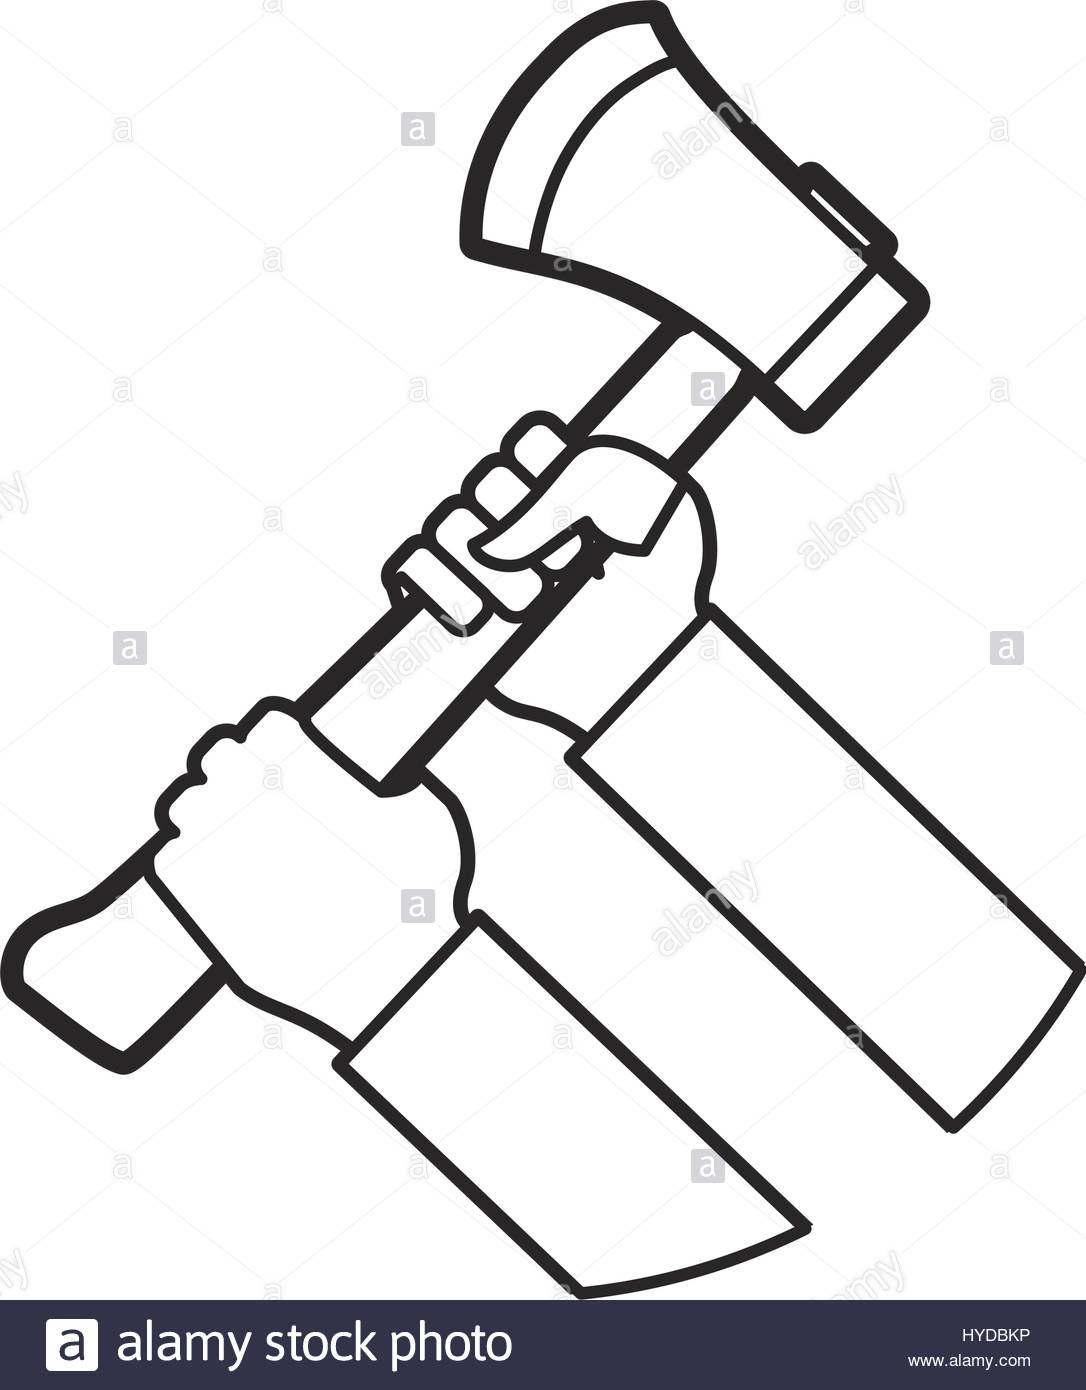 1086x1390 Hands Holding Axe Fire Tool Vector Icon Illustration Stock Vector